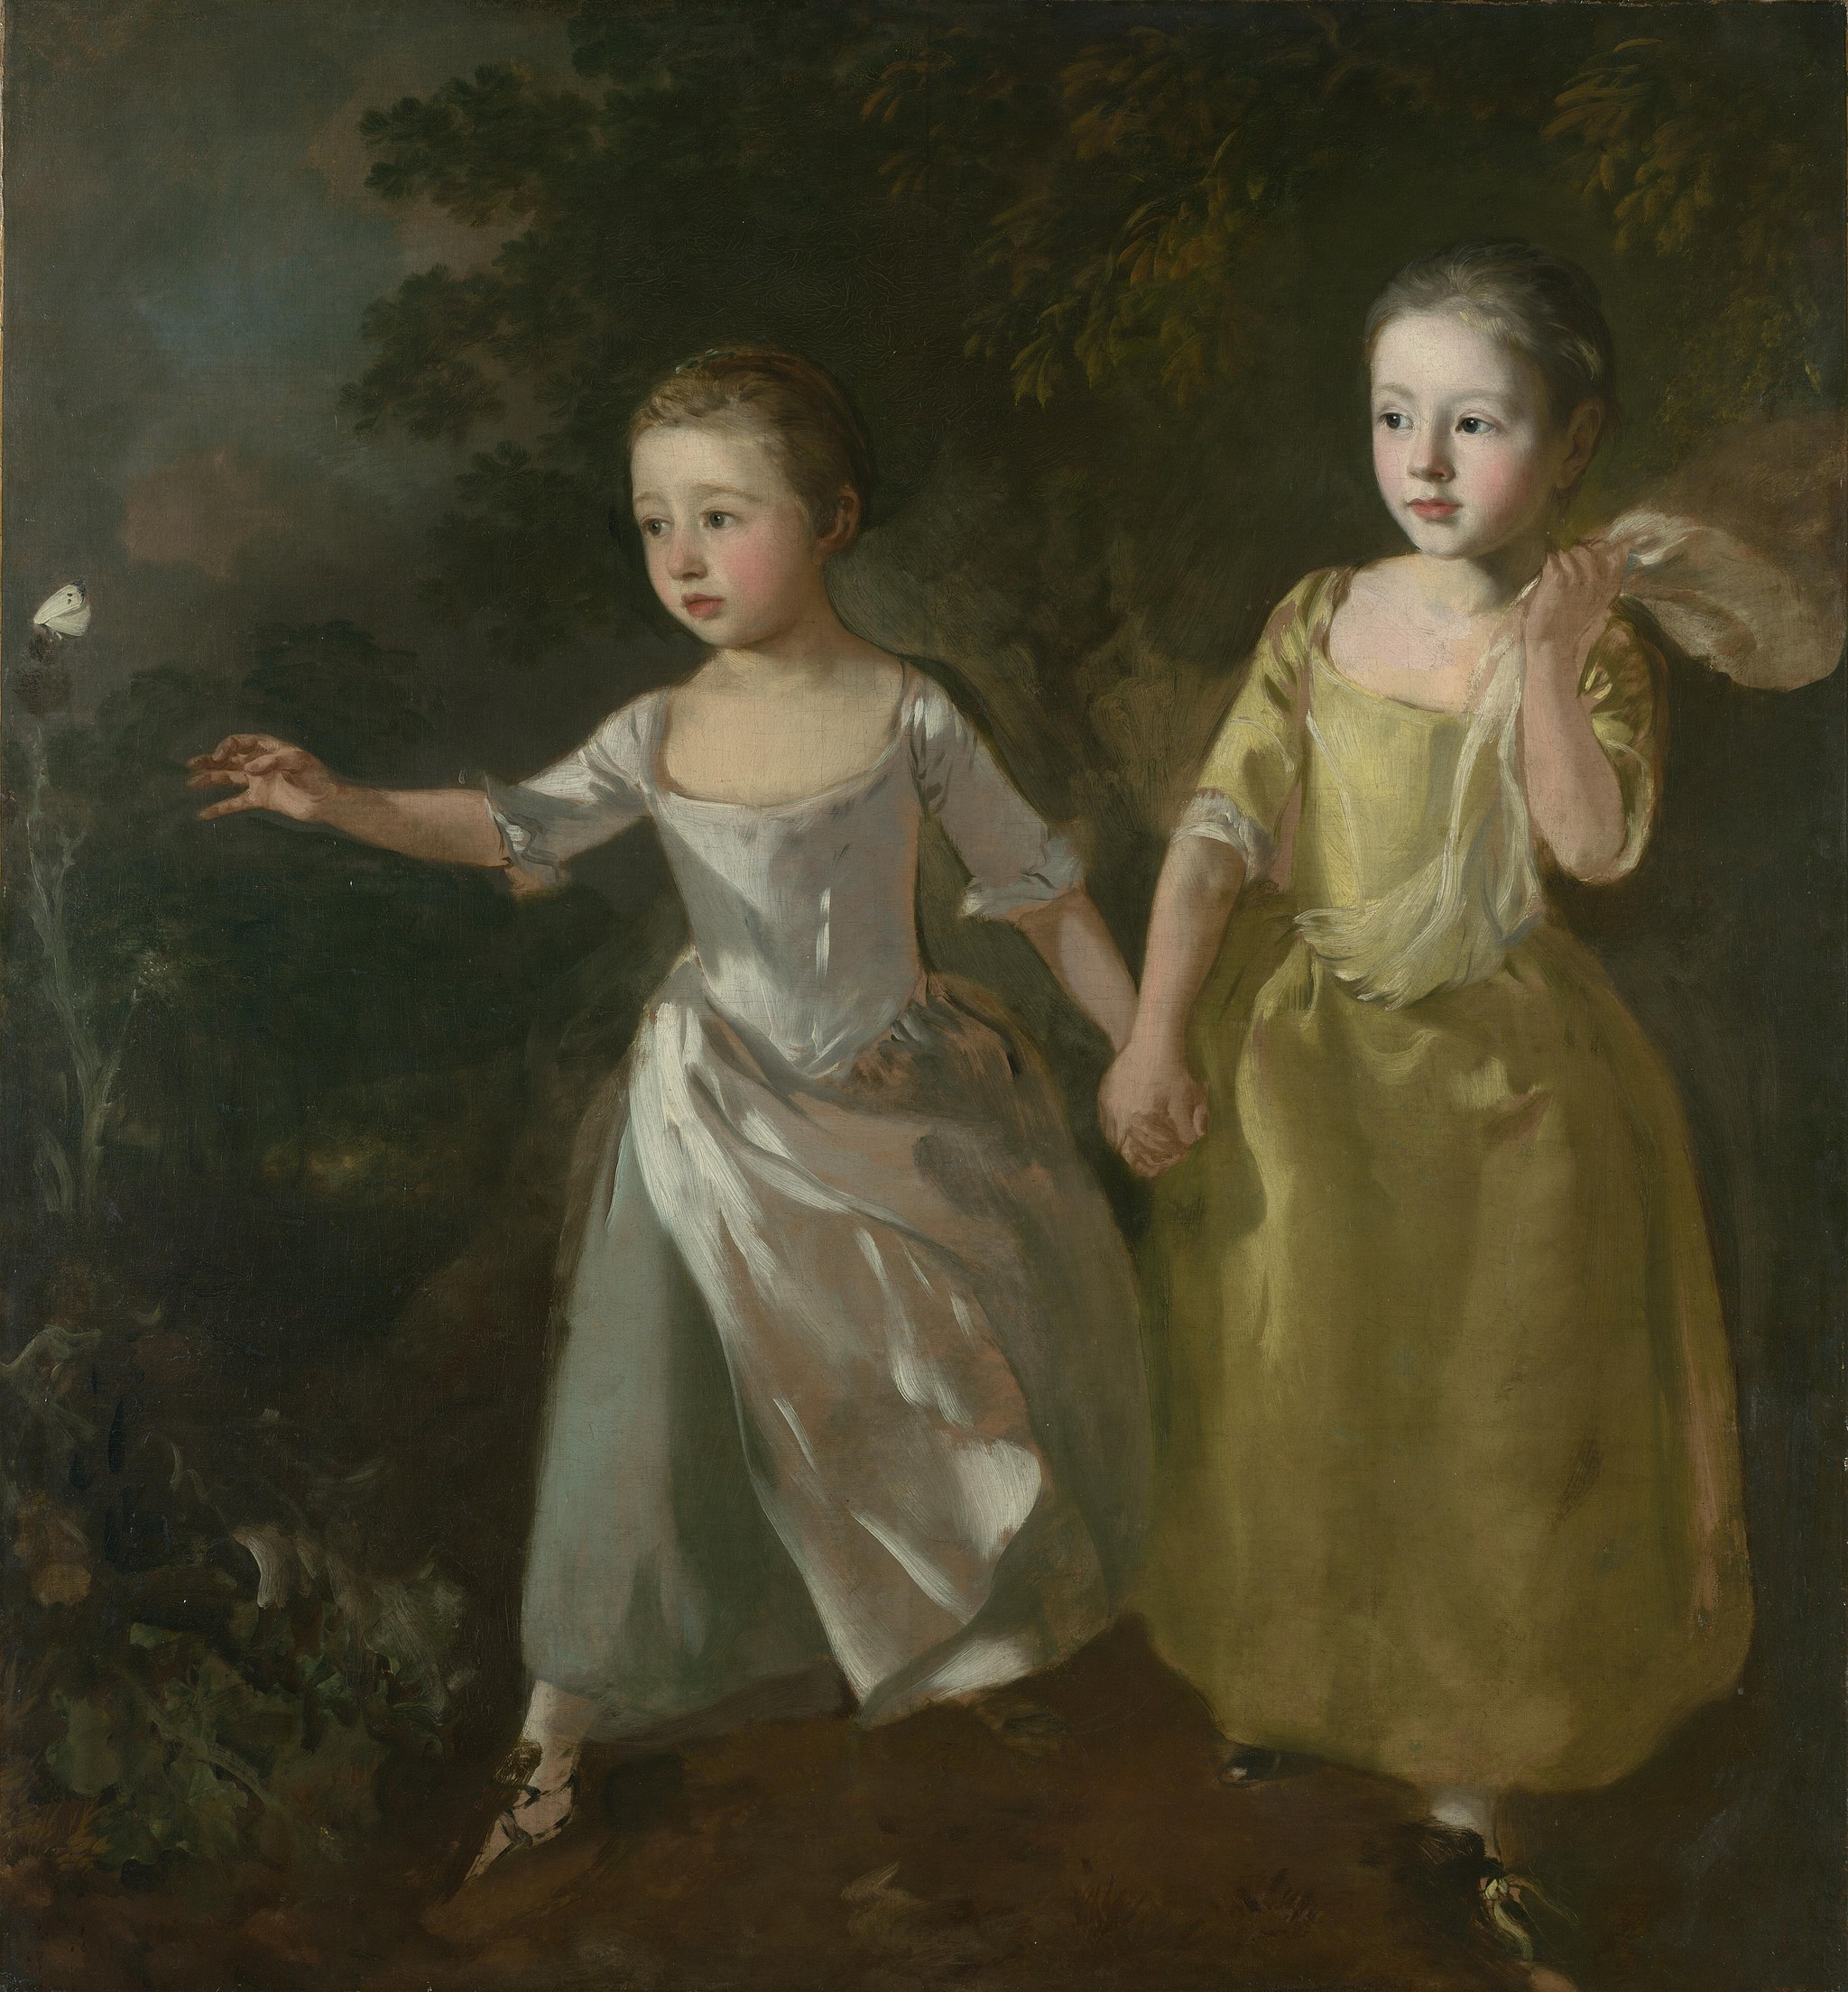 Thomas Gainsborough, The Painter's Daughters chasing a Butterfly, c1756,